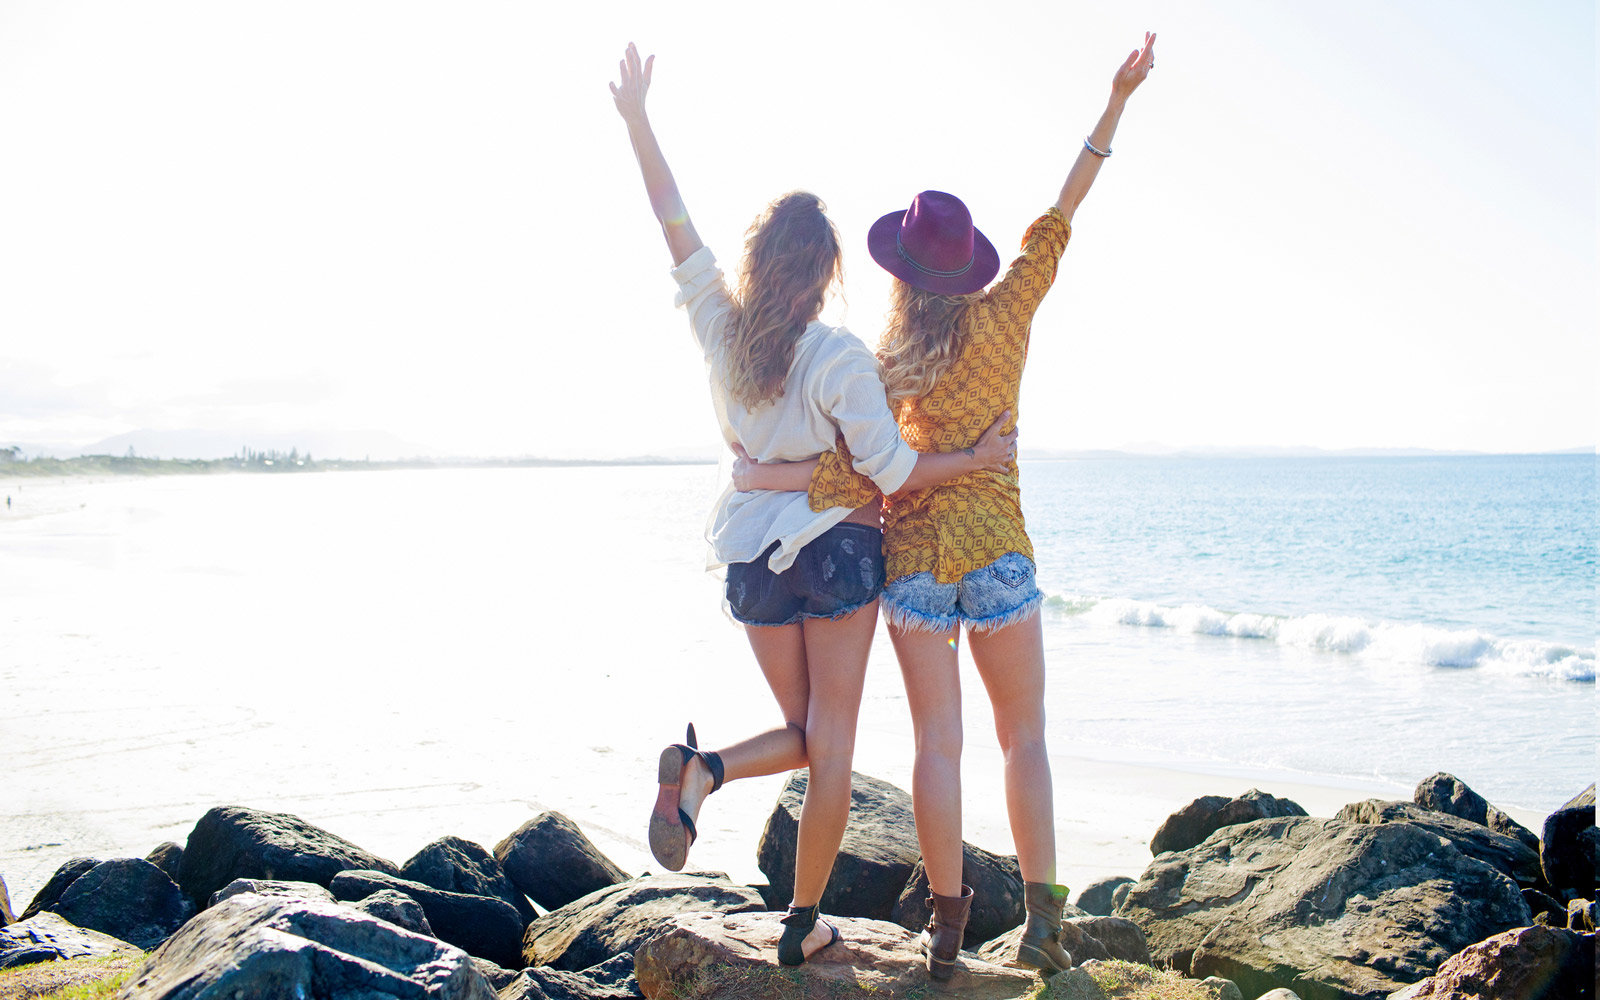 Two females arms raised on the beach